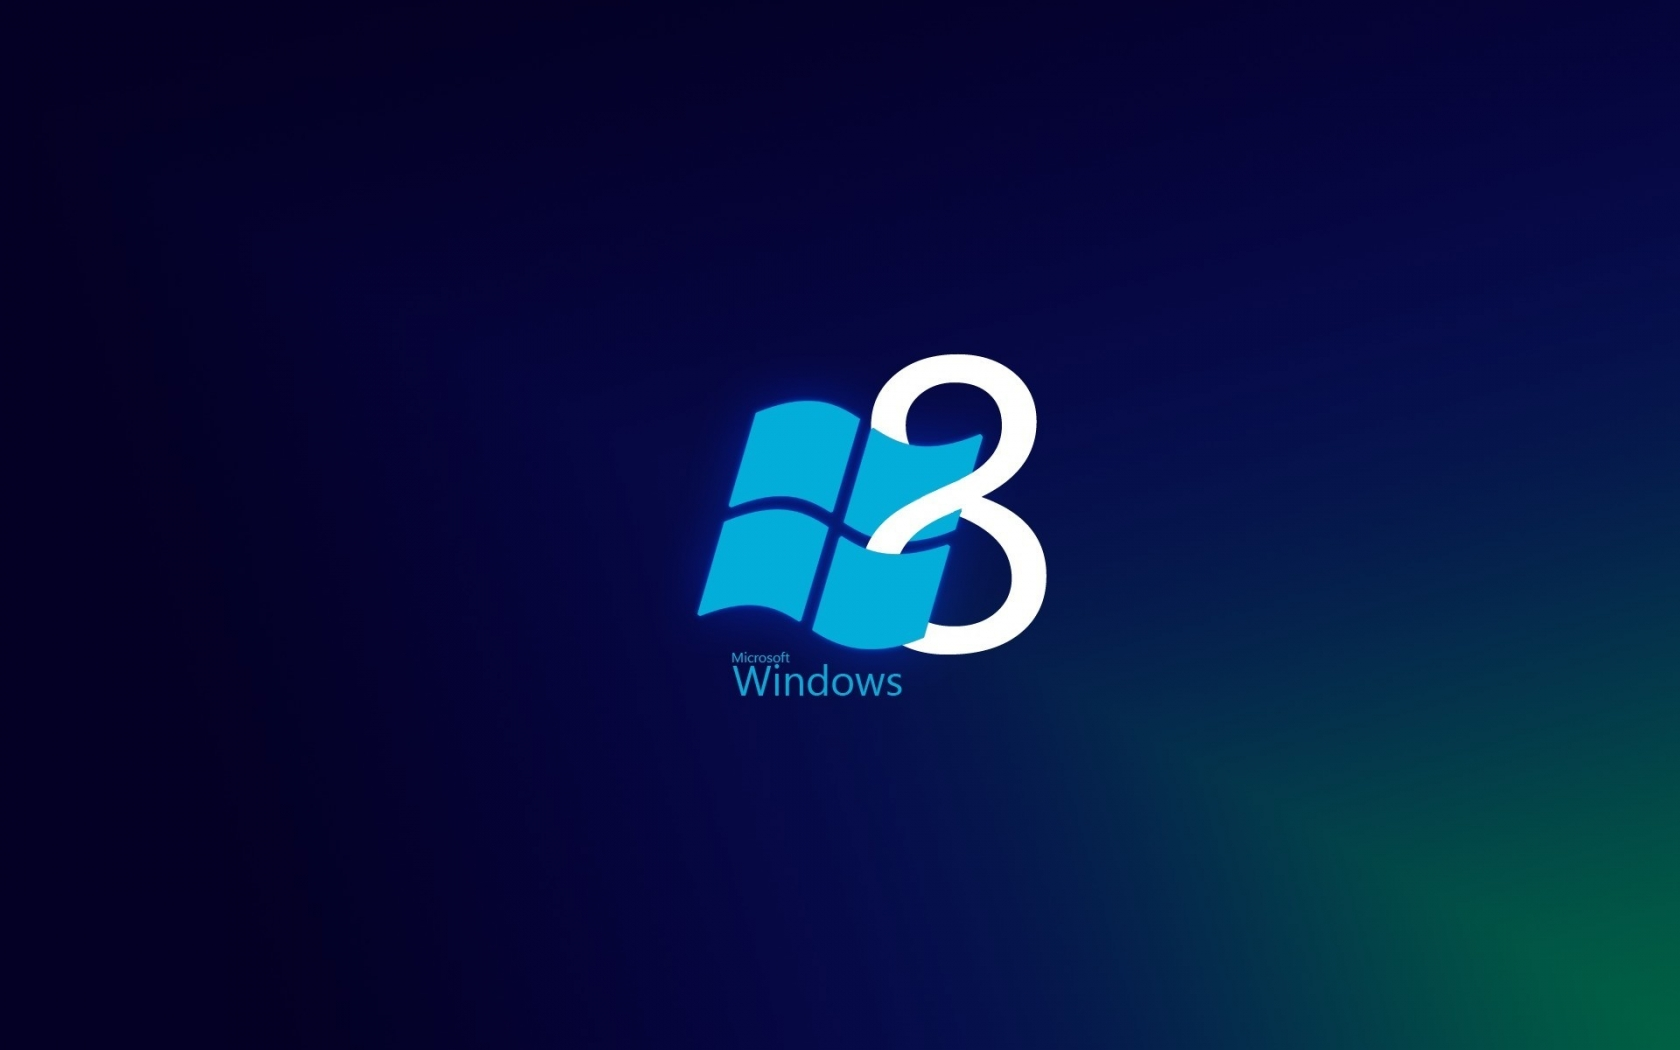 Windows 8 Blue Style for 1680 x 1050 widescreen resolution